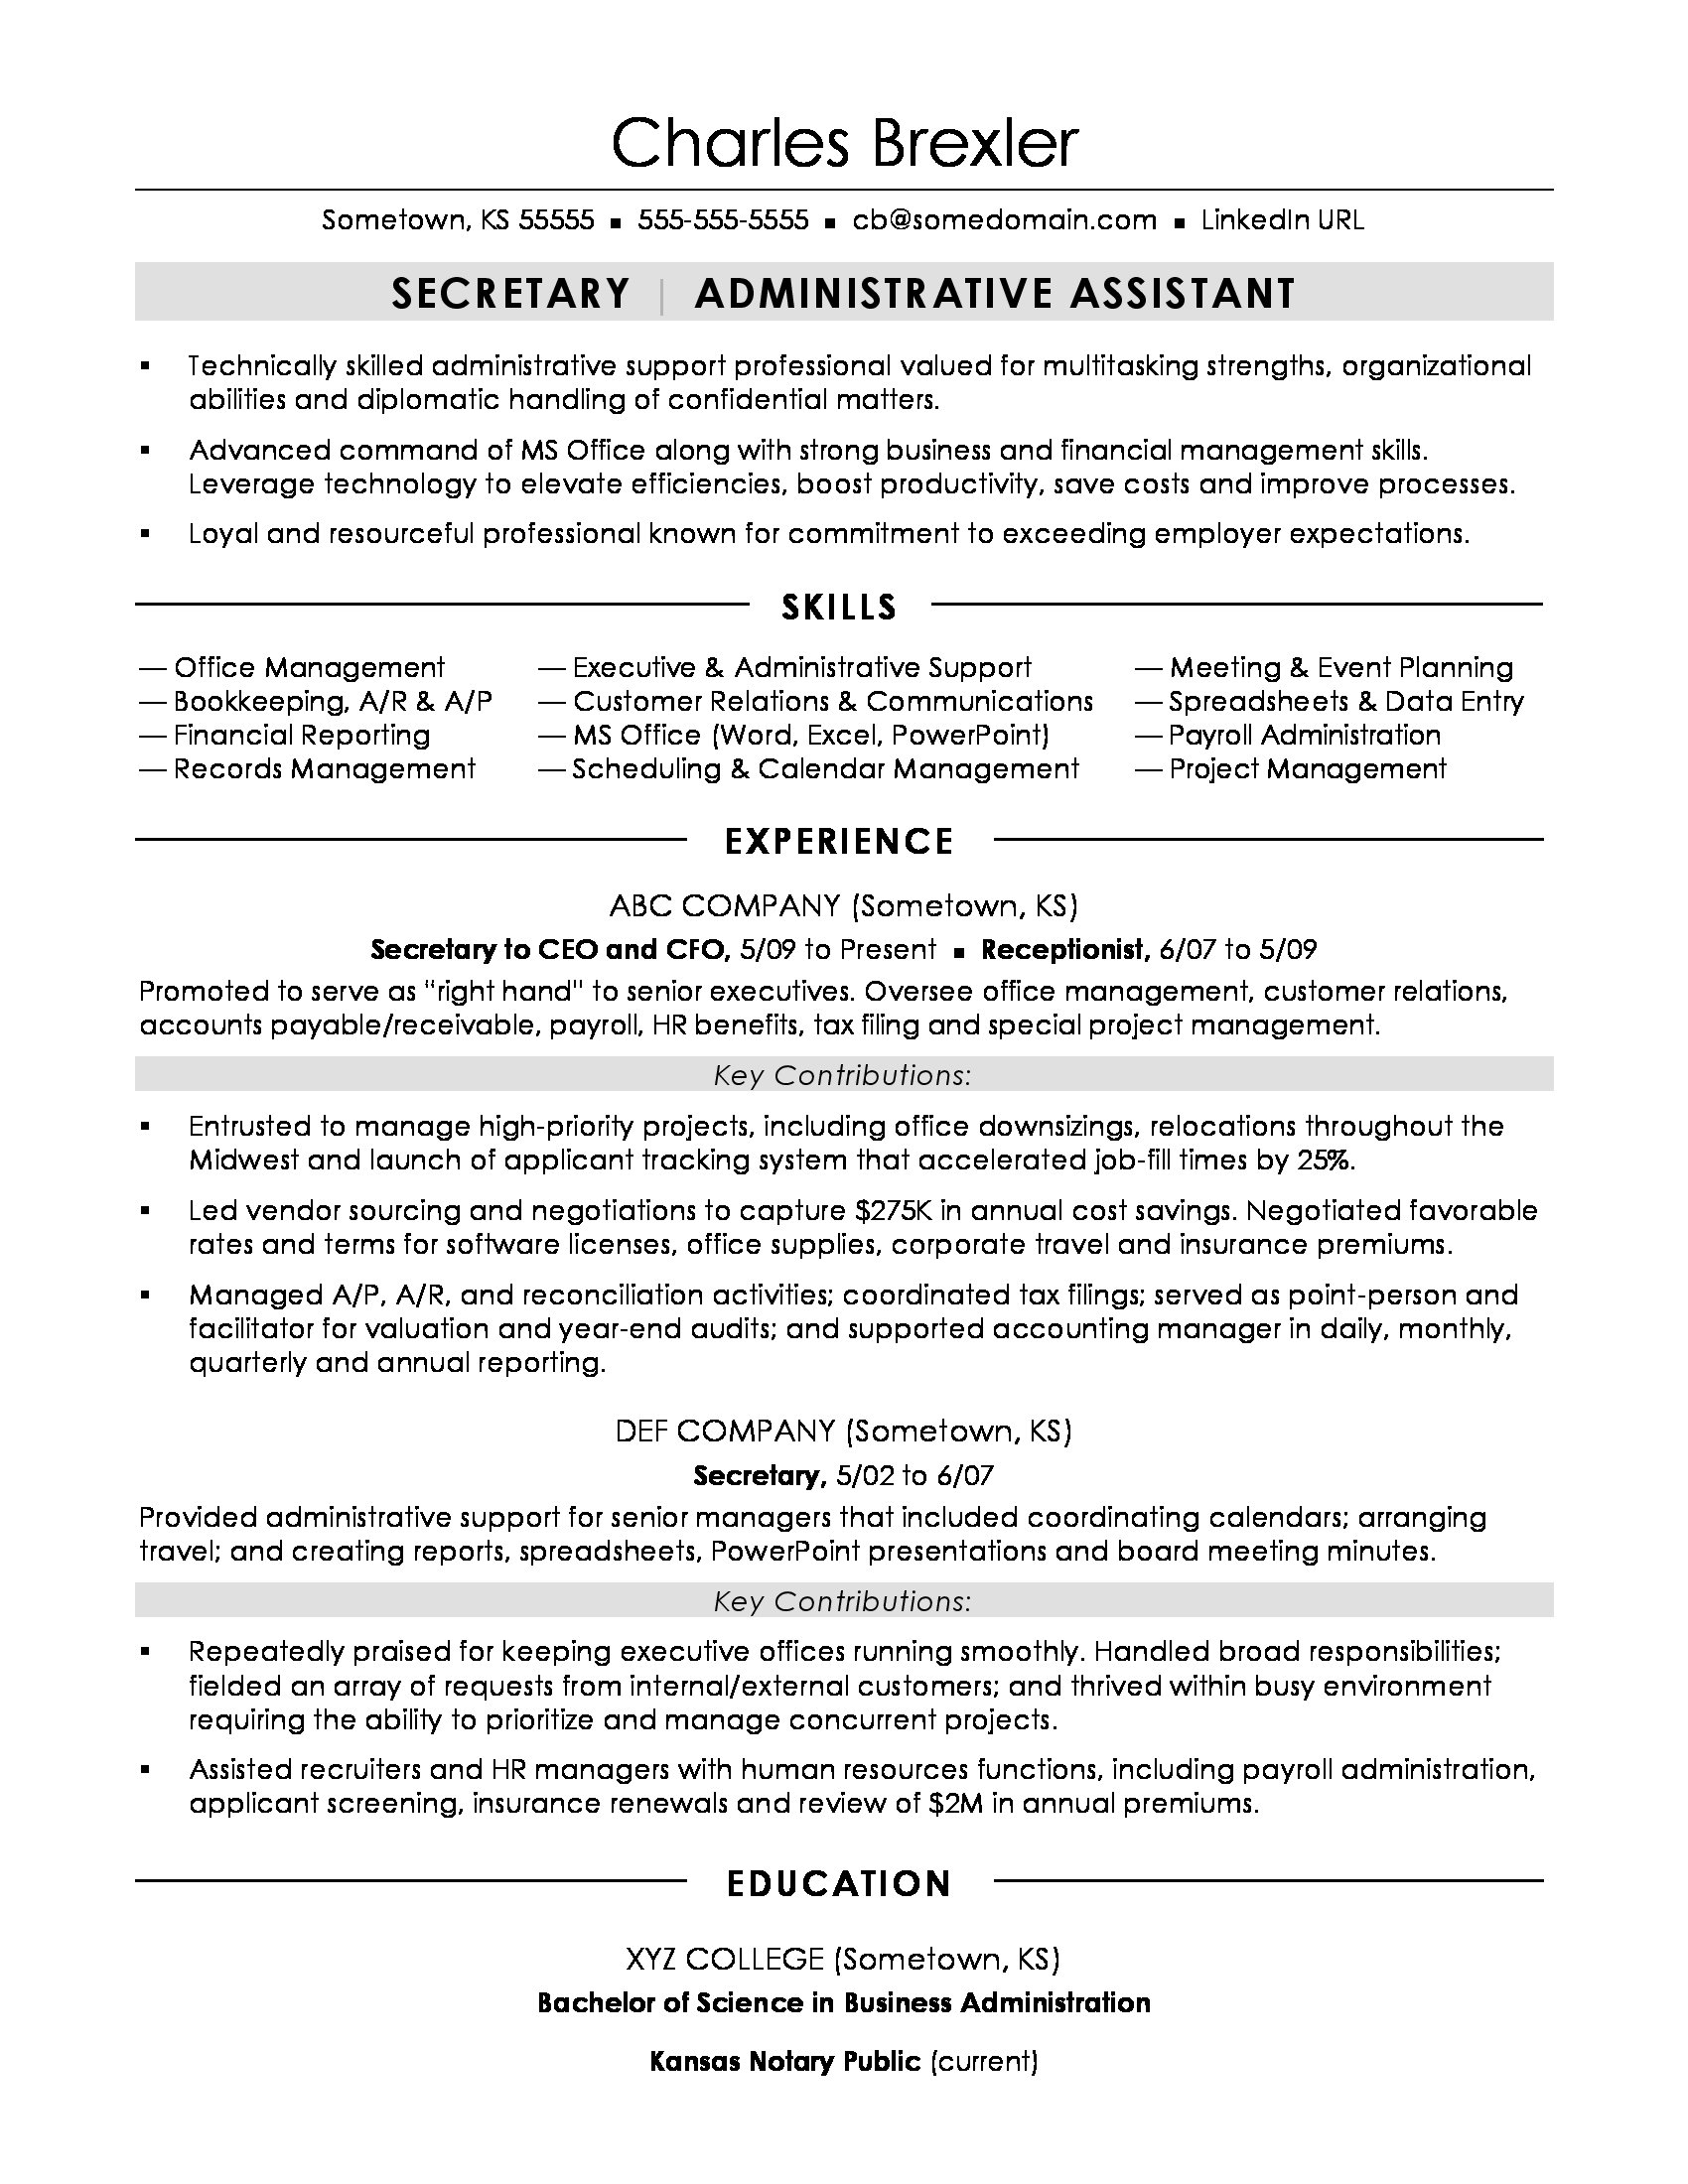 secretary resume sample monster title for administrative assistant well testing marketing Resume Resume Title For Administrative Assistant